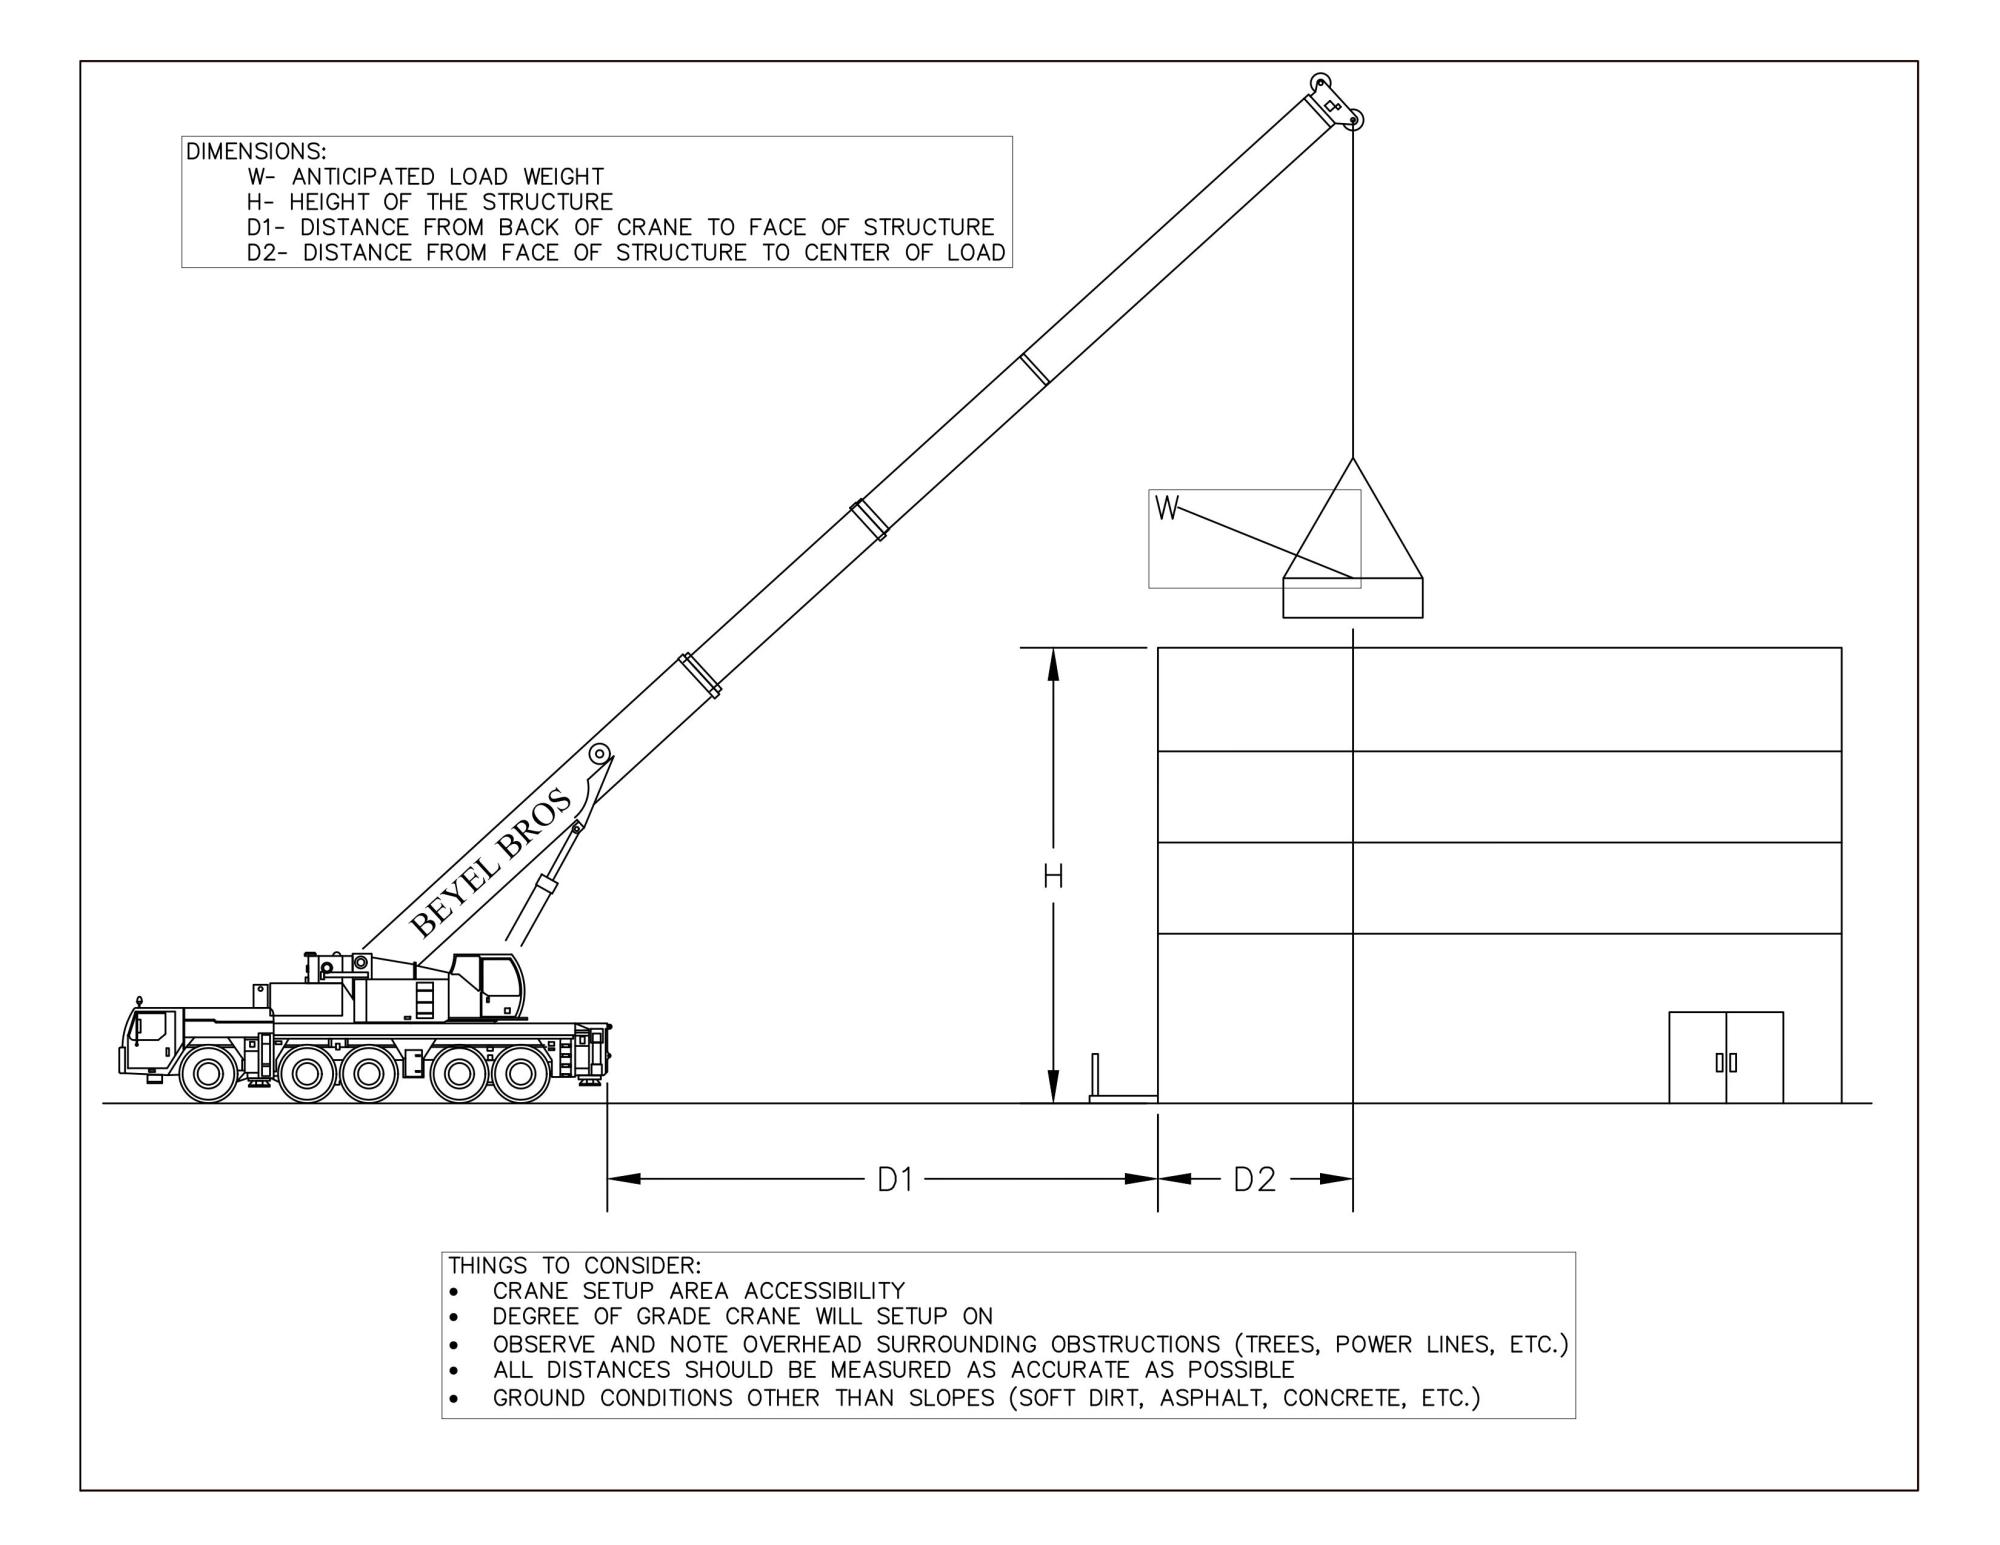 hight resolution of additional information needed for crane rental